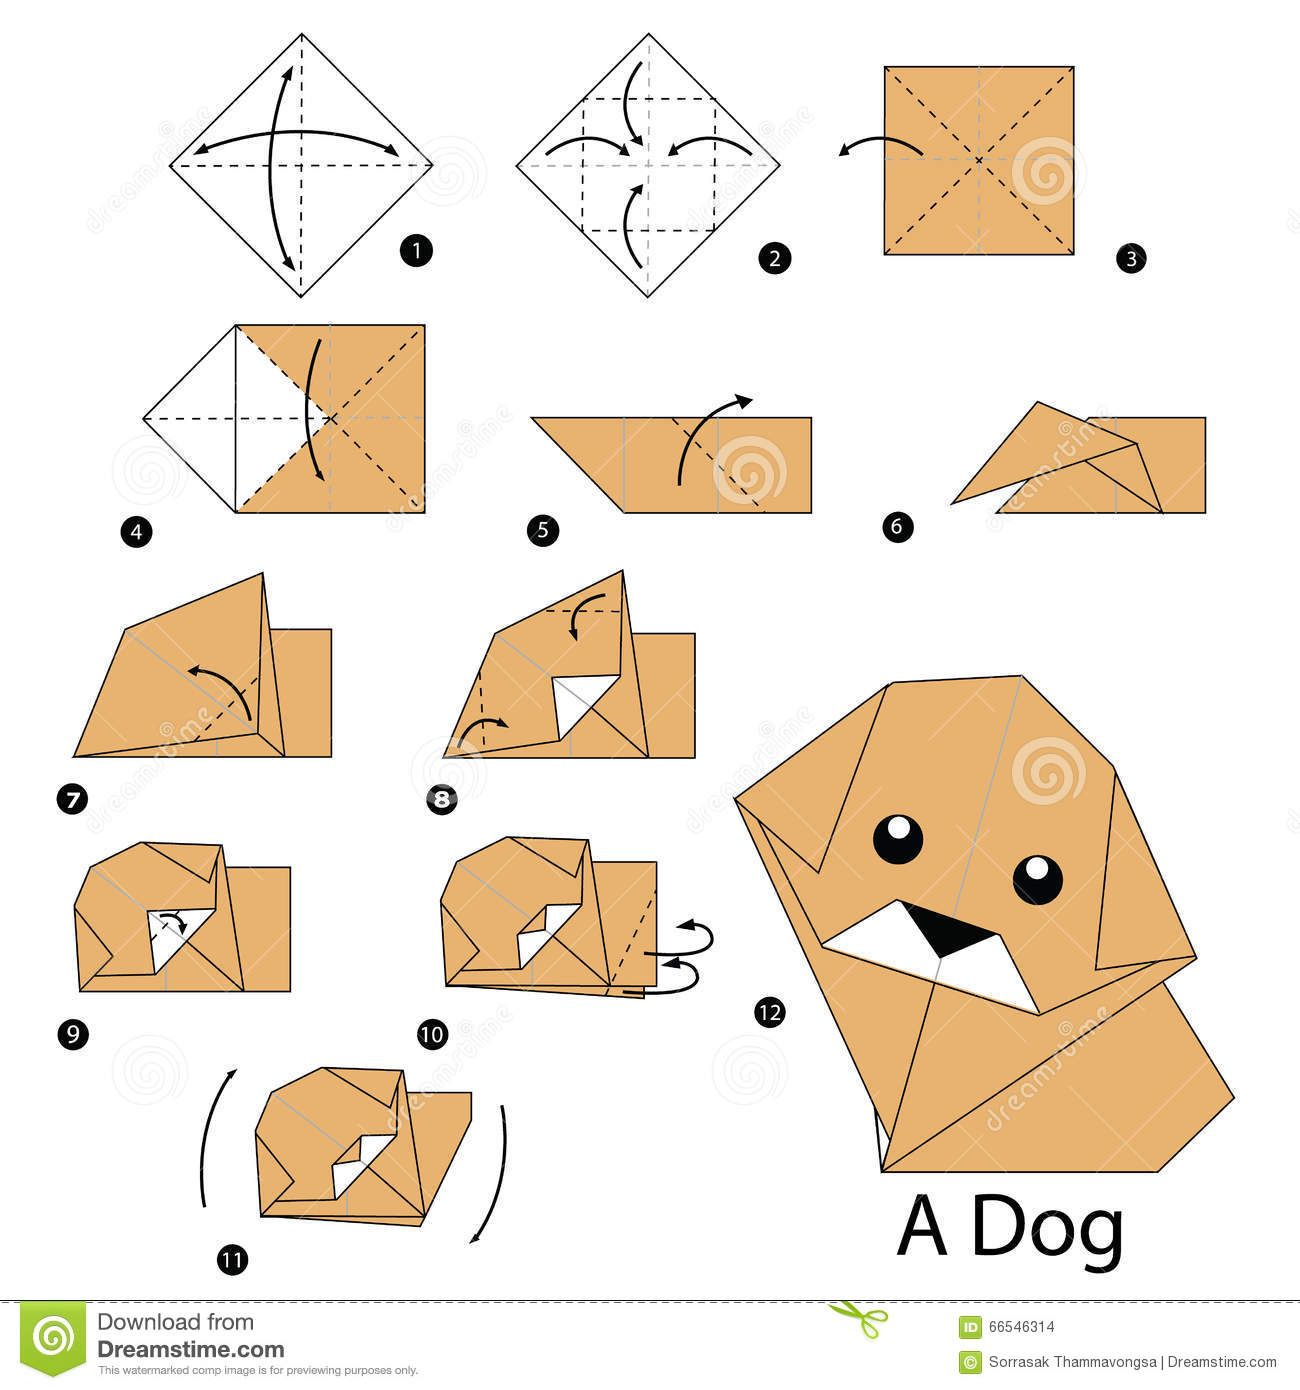 instructions tape par tape comment faire le chien d origami instructions tape par tape comment faire le chien d jeuxipadfo Choice Image